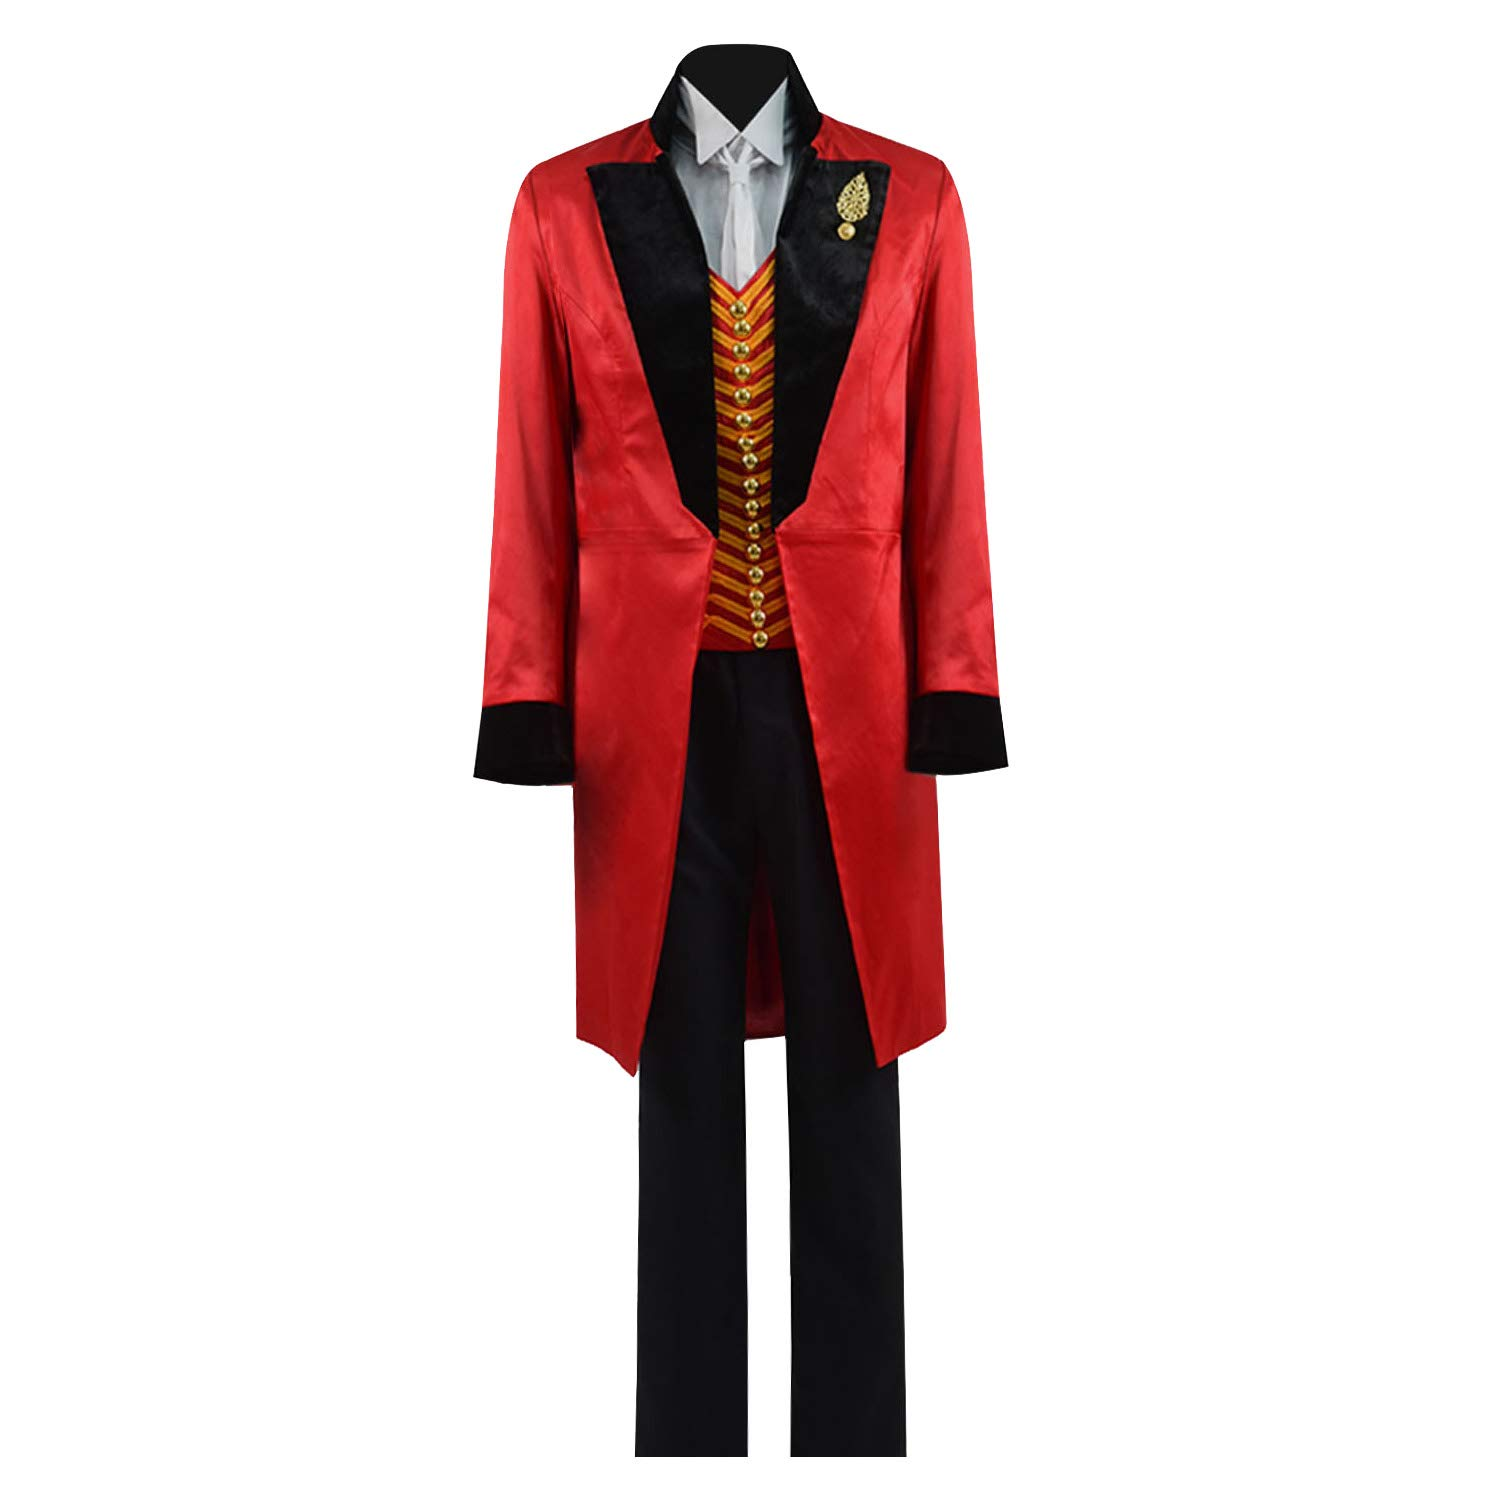 Greatest PT Barnum Cosplay Costume Performance Uniform Showman Party Suit (X-Large, Red Black)